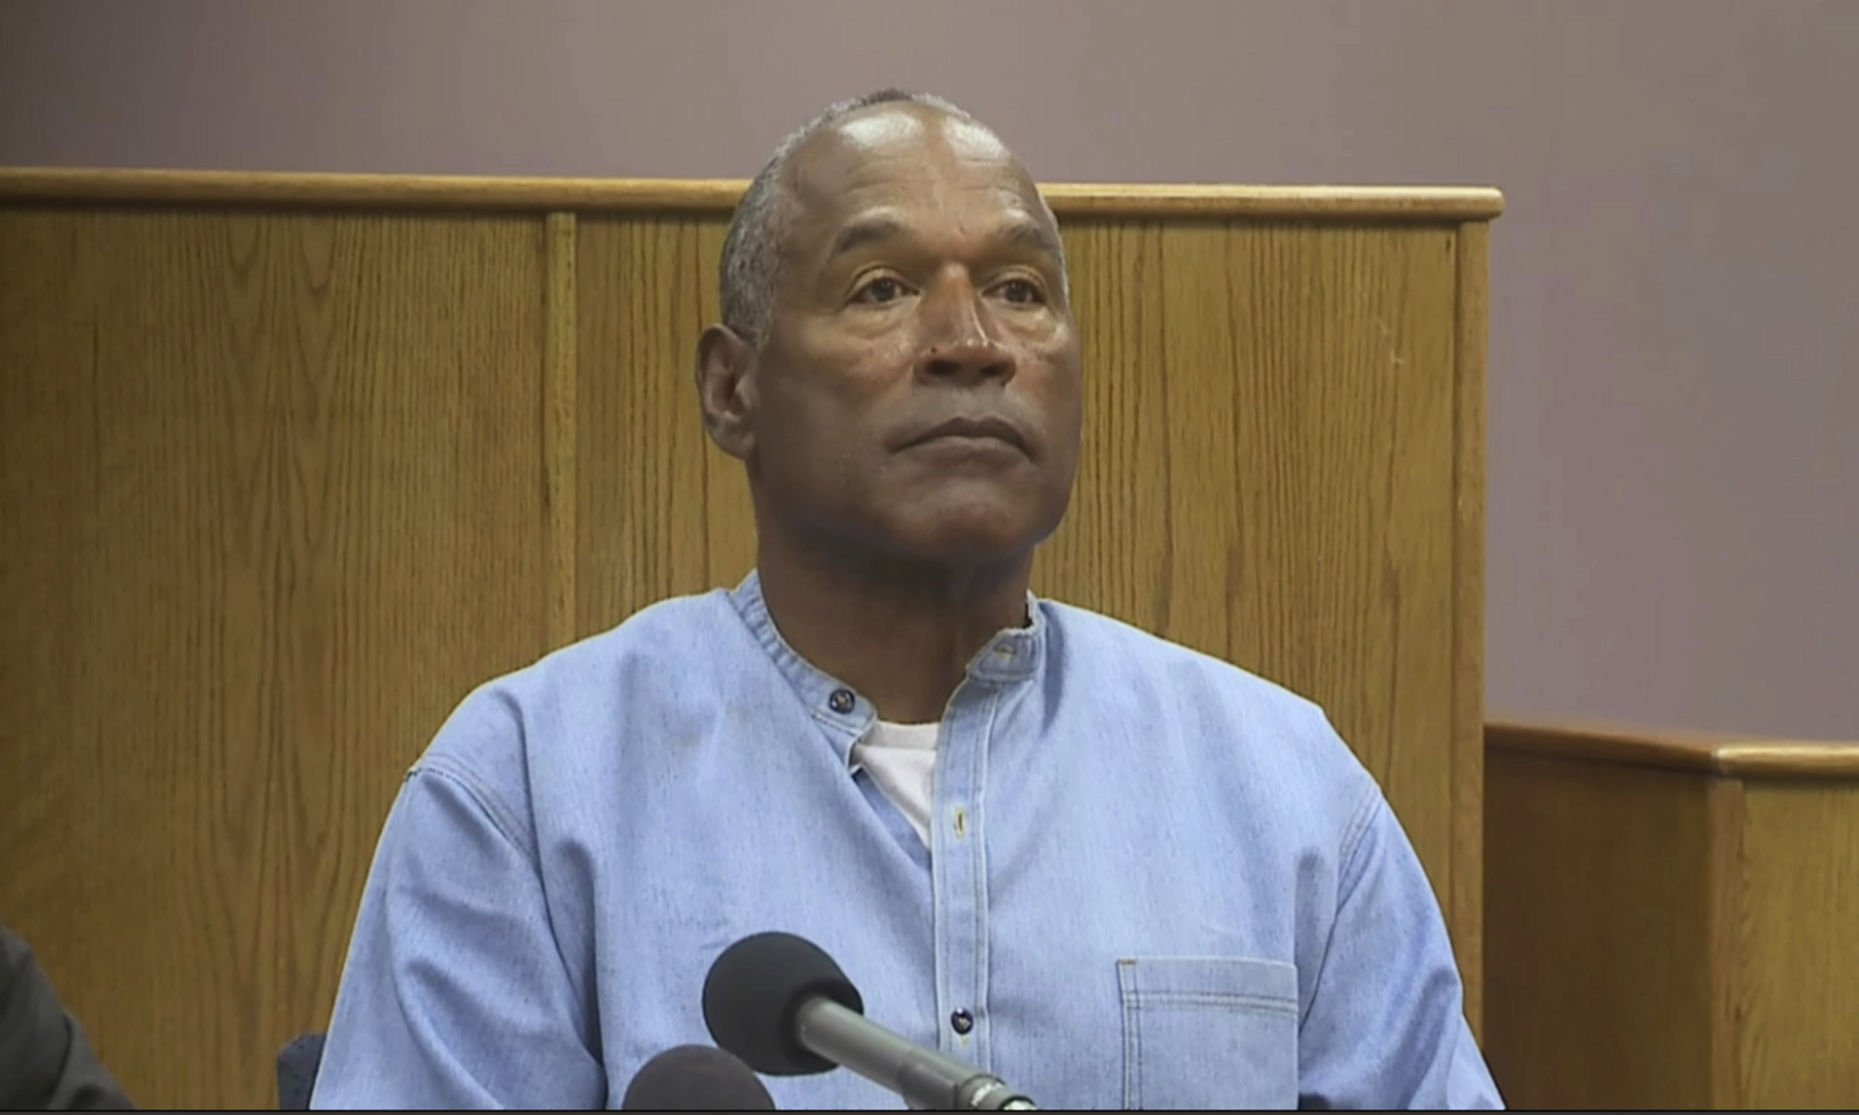 OJ Simpson Up For Parole